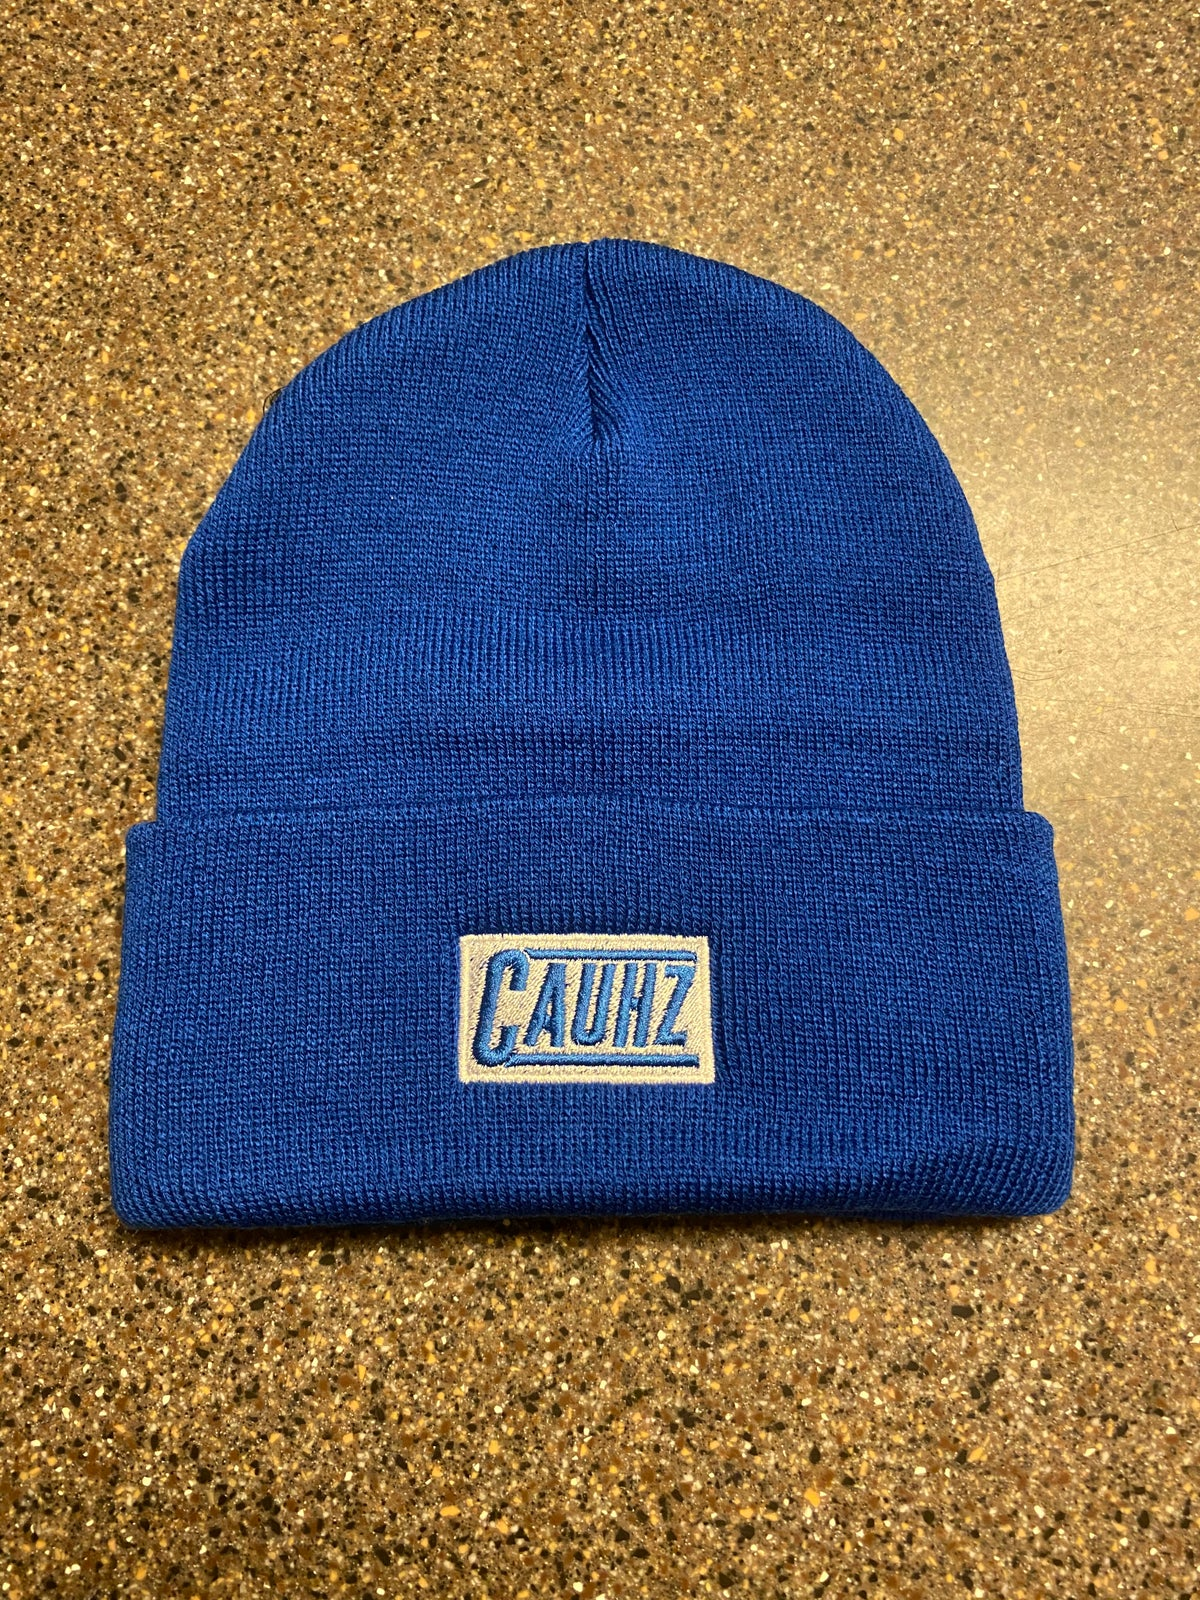 Image of Cauhz™️ Royal Blue Logo Stitched Beanie